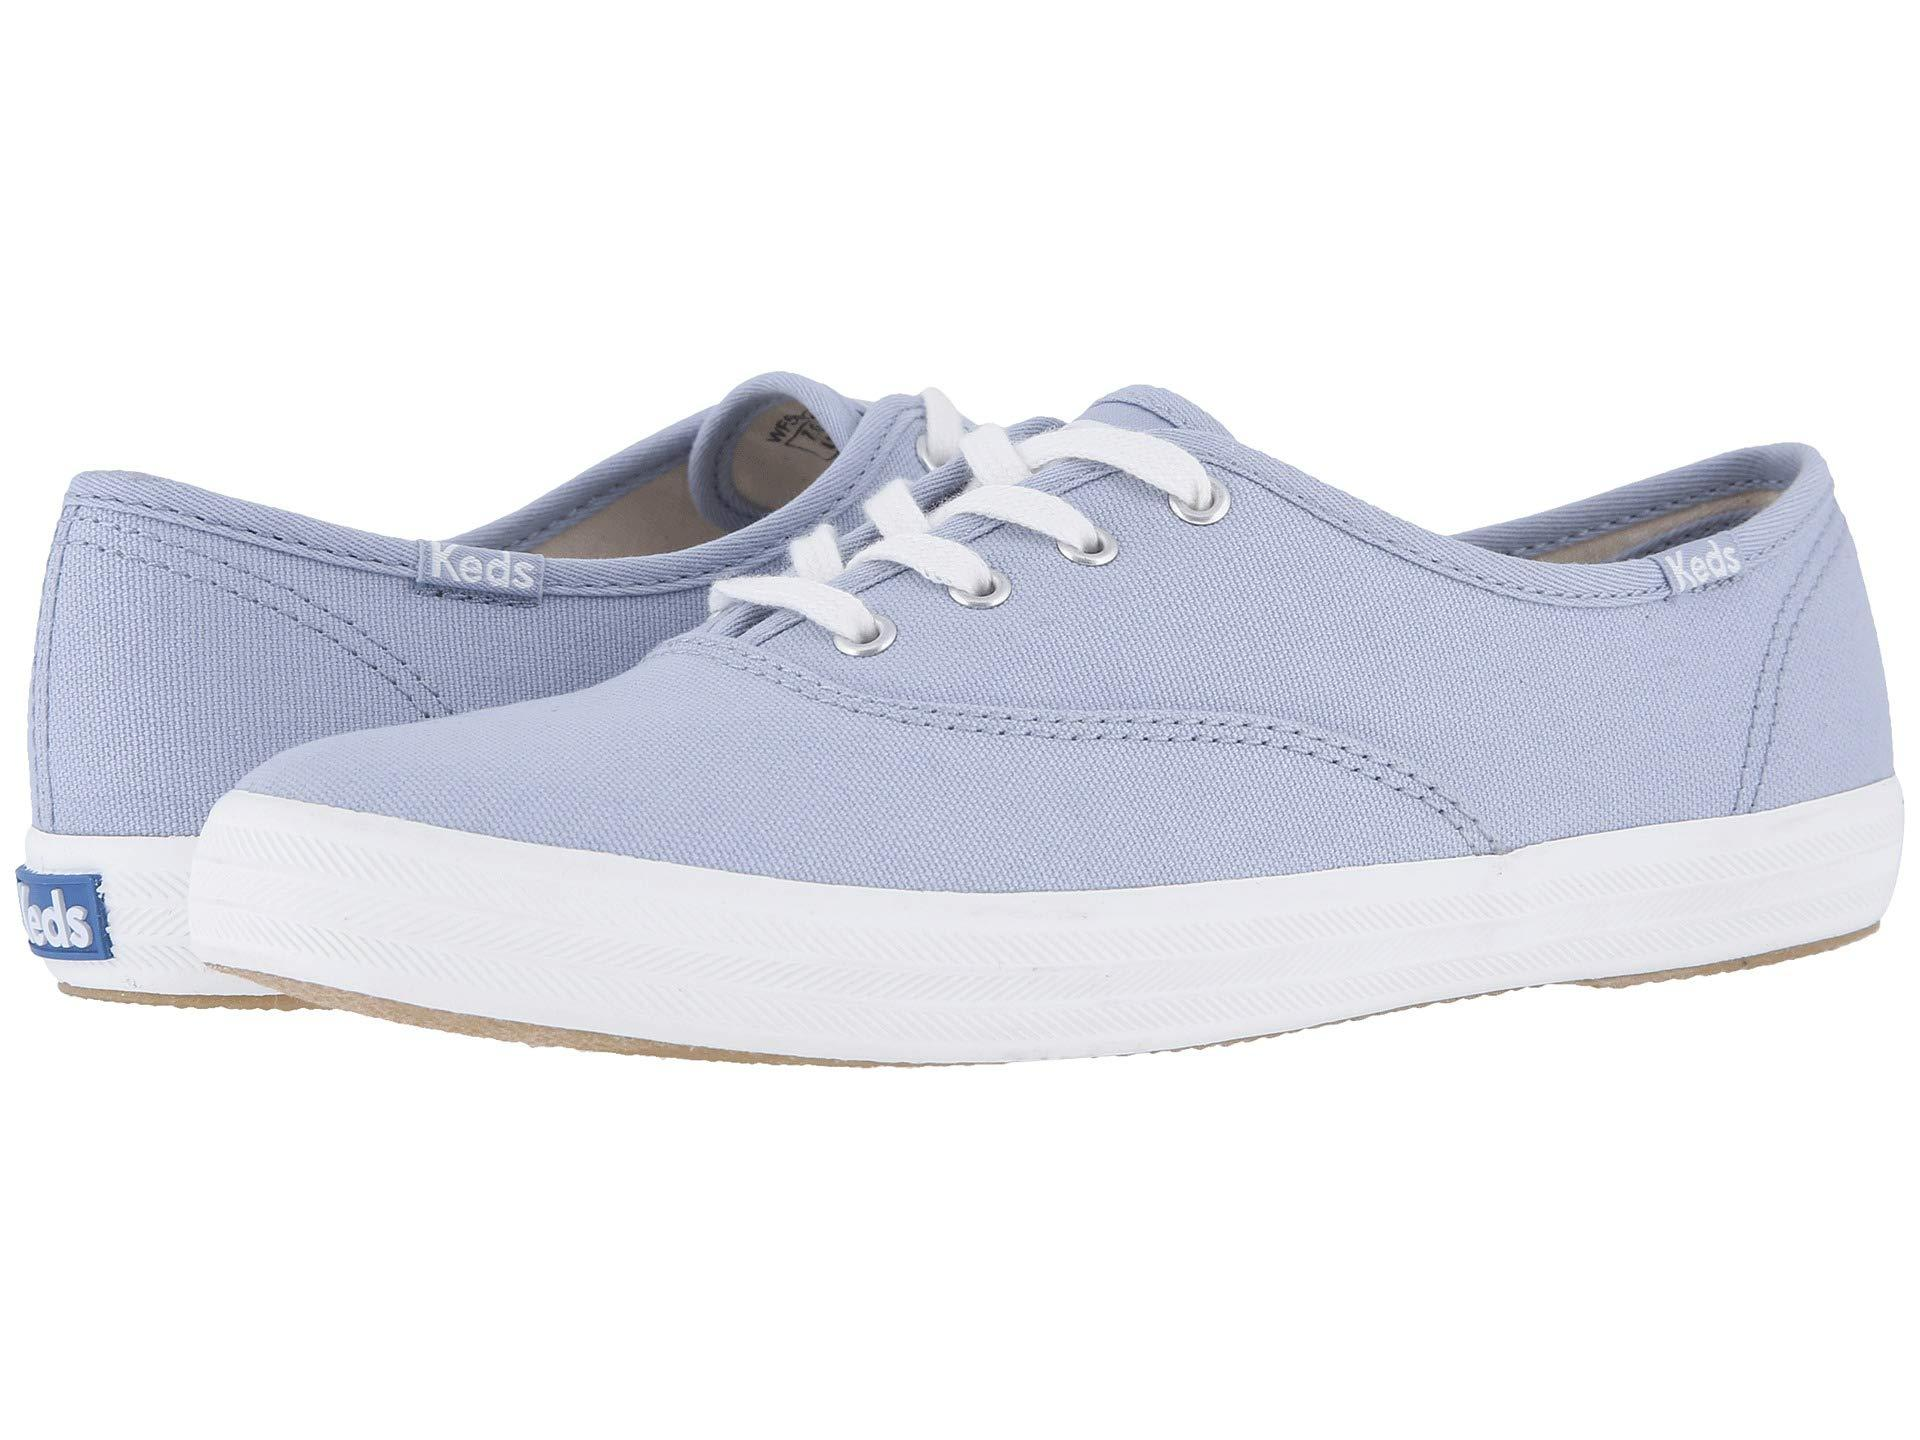 90f7034a7 Keds - Blue Champion Solids (dark Teal Canvas) Women s Shoes - Lyst. View  fullscreen